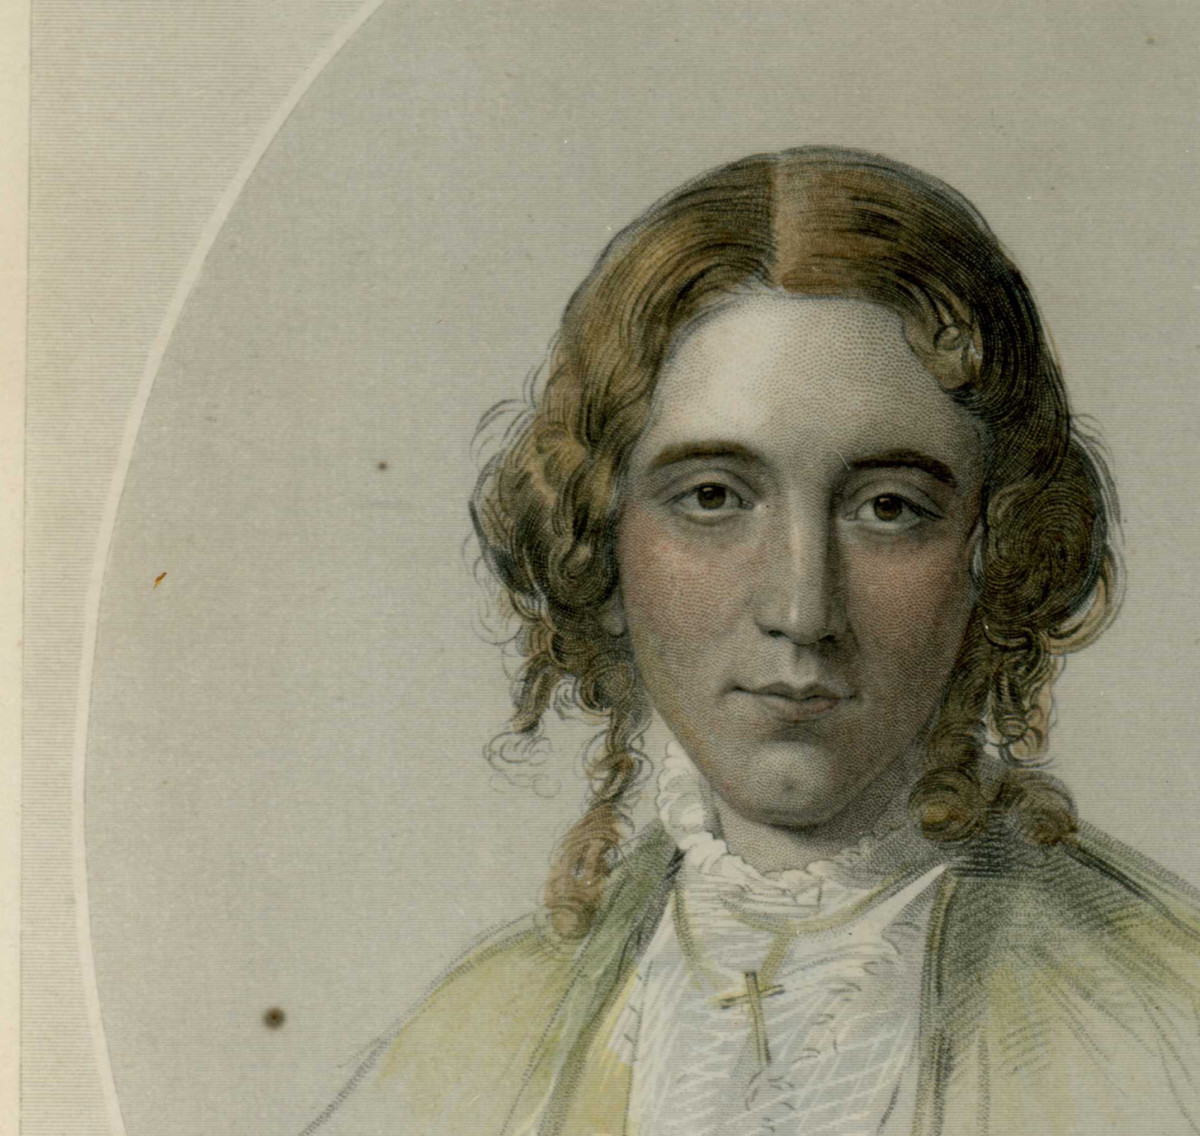 biography of harriet beecher stowe essay 2018-07-03 catharine beecher (1800-1878) catharine  (her sister was abolitionist author harriet beecher stowe),  she published a seminal essay on the importance of women as.